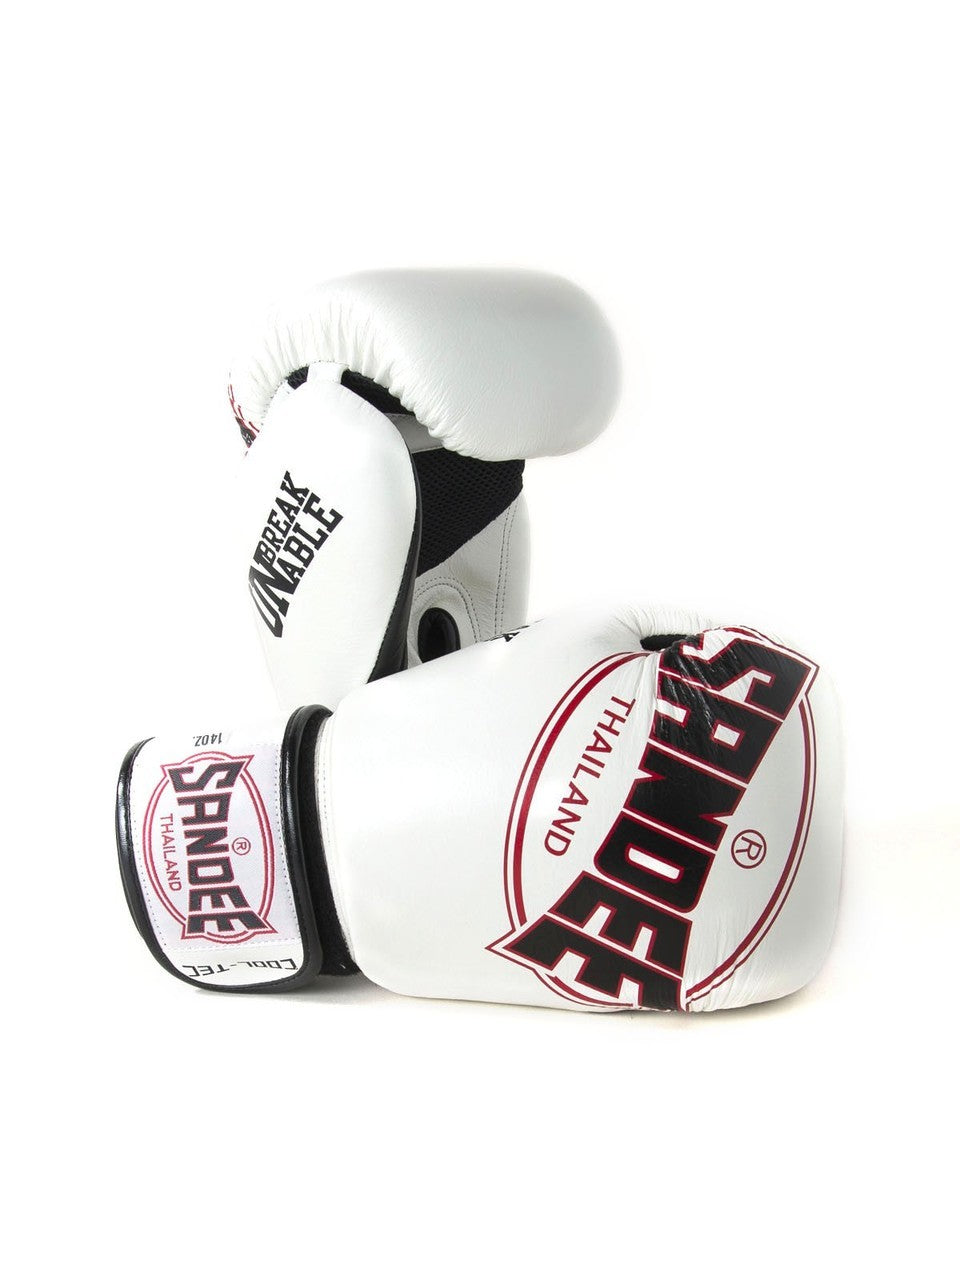 Image of Sandee Cool Tec White Leather Boxing Gloves